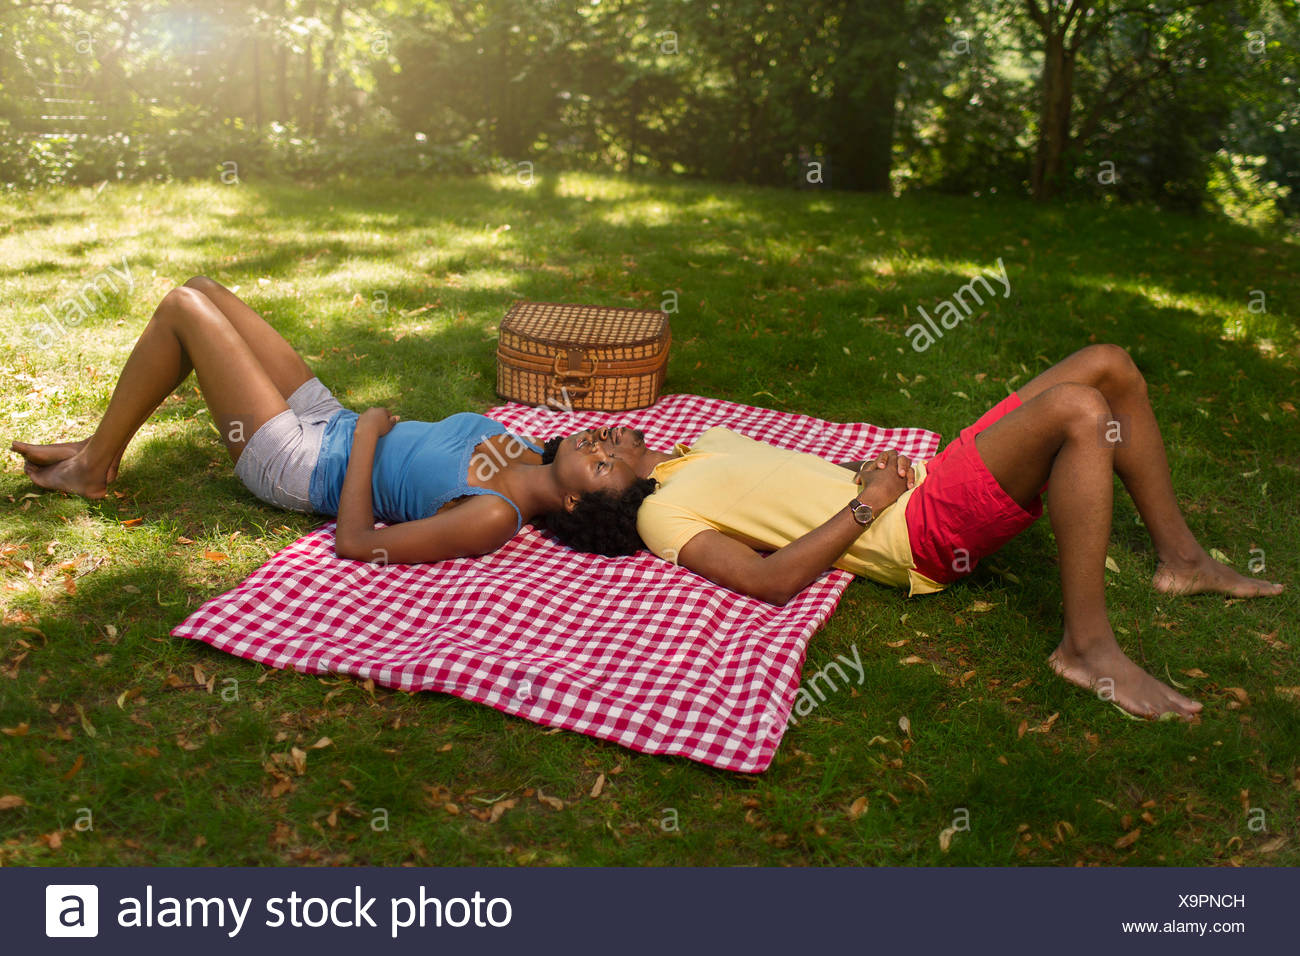 Young couple lying on picnic blanket in park on opposite sides - Stock Image